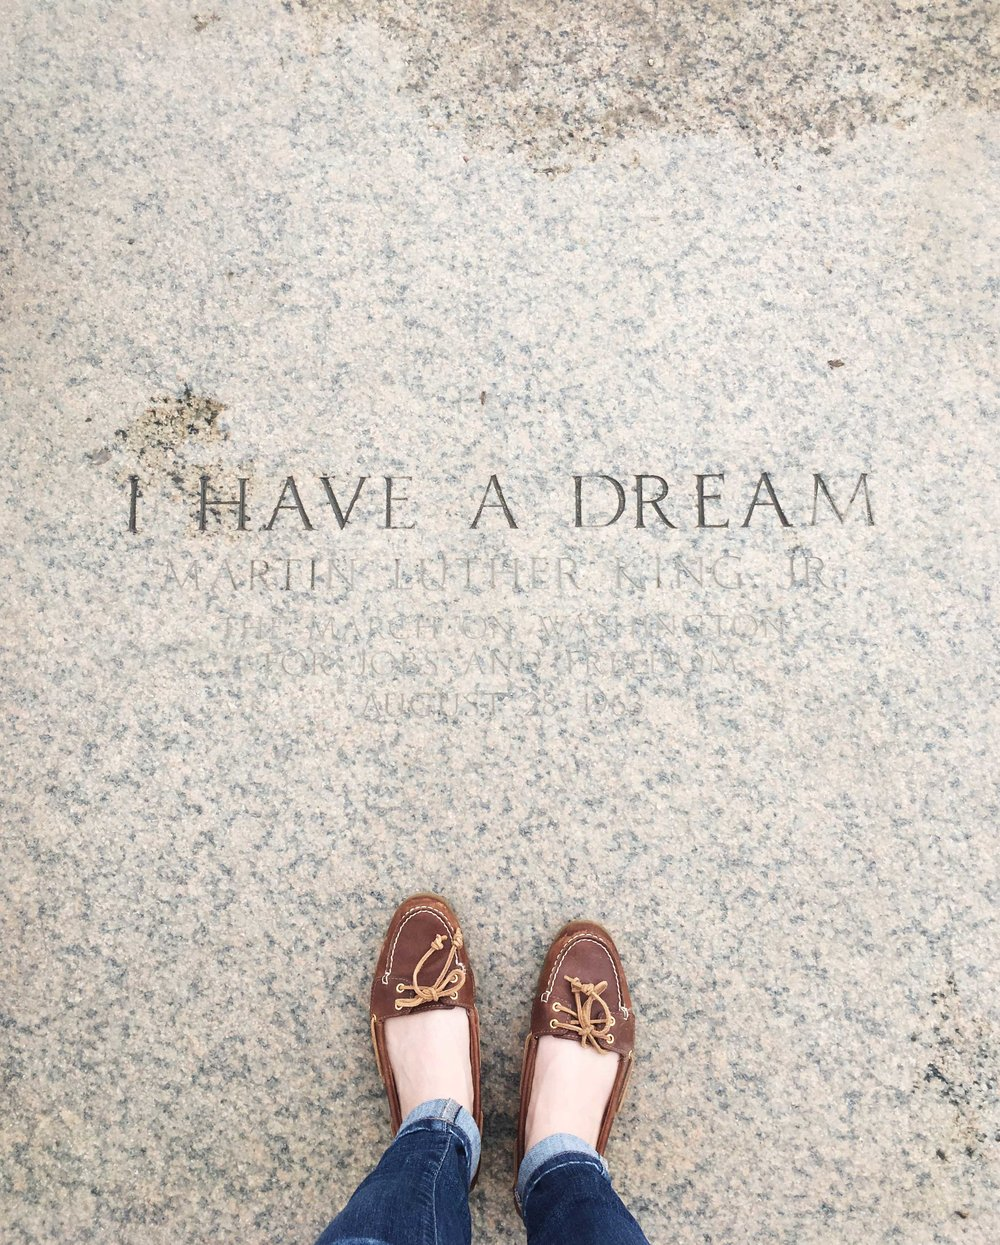 Adventures with Kids in Washington D.C. | Lincoln Memorial. Martin Luther King Jr. Quote.